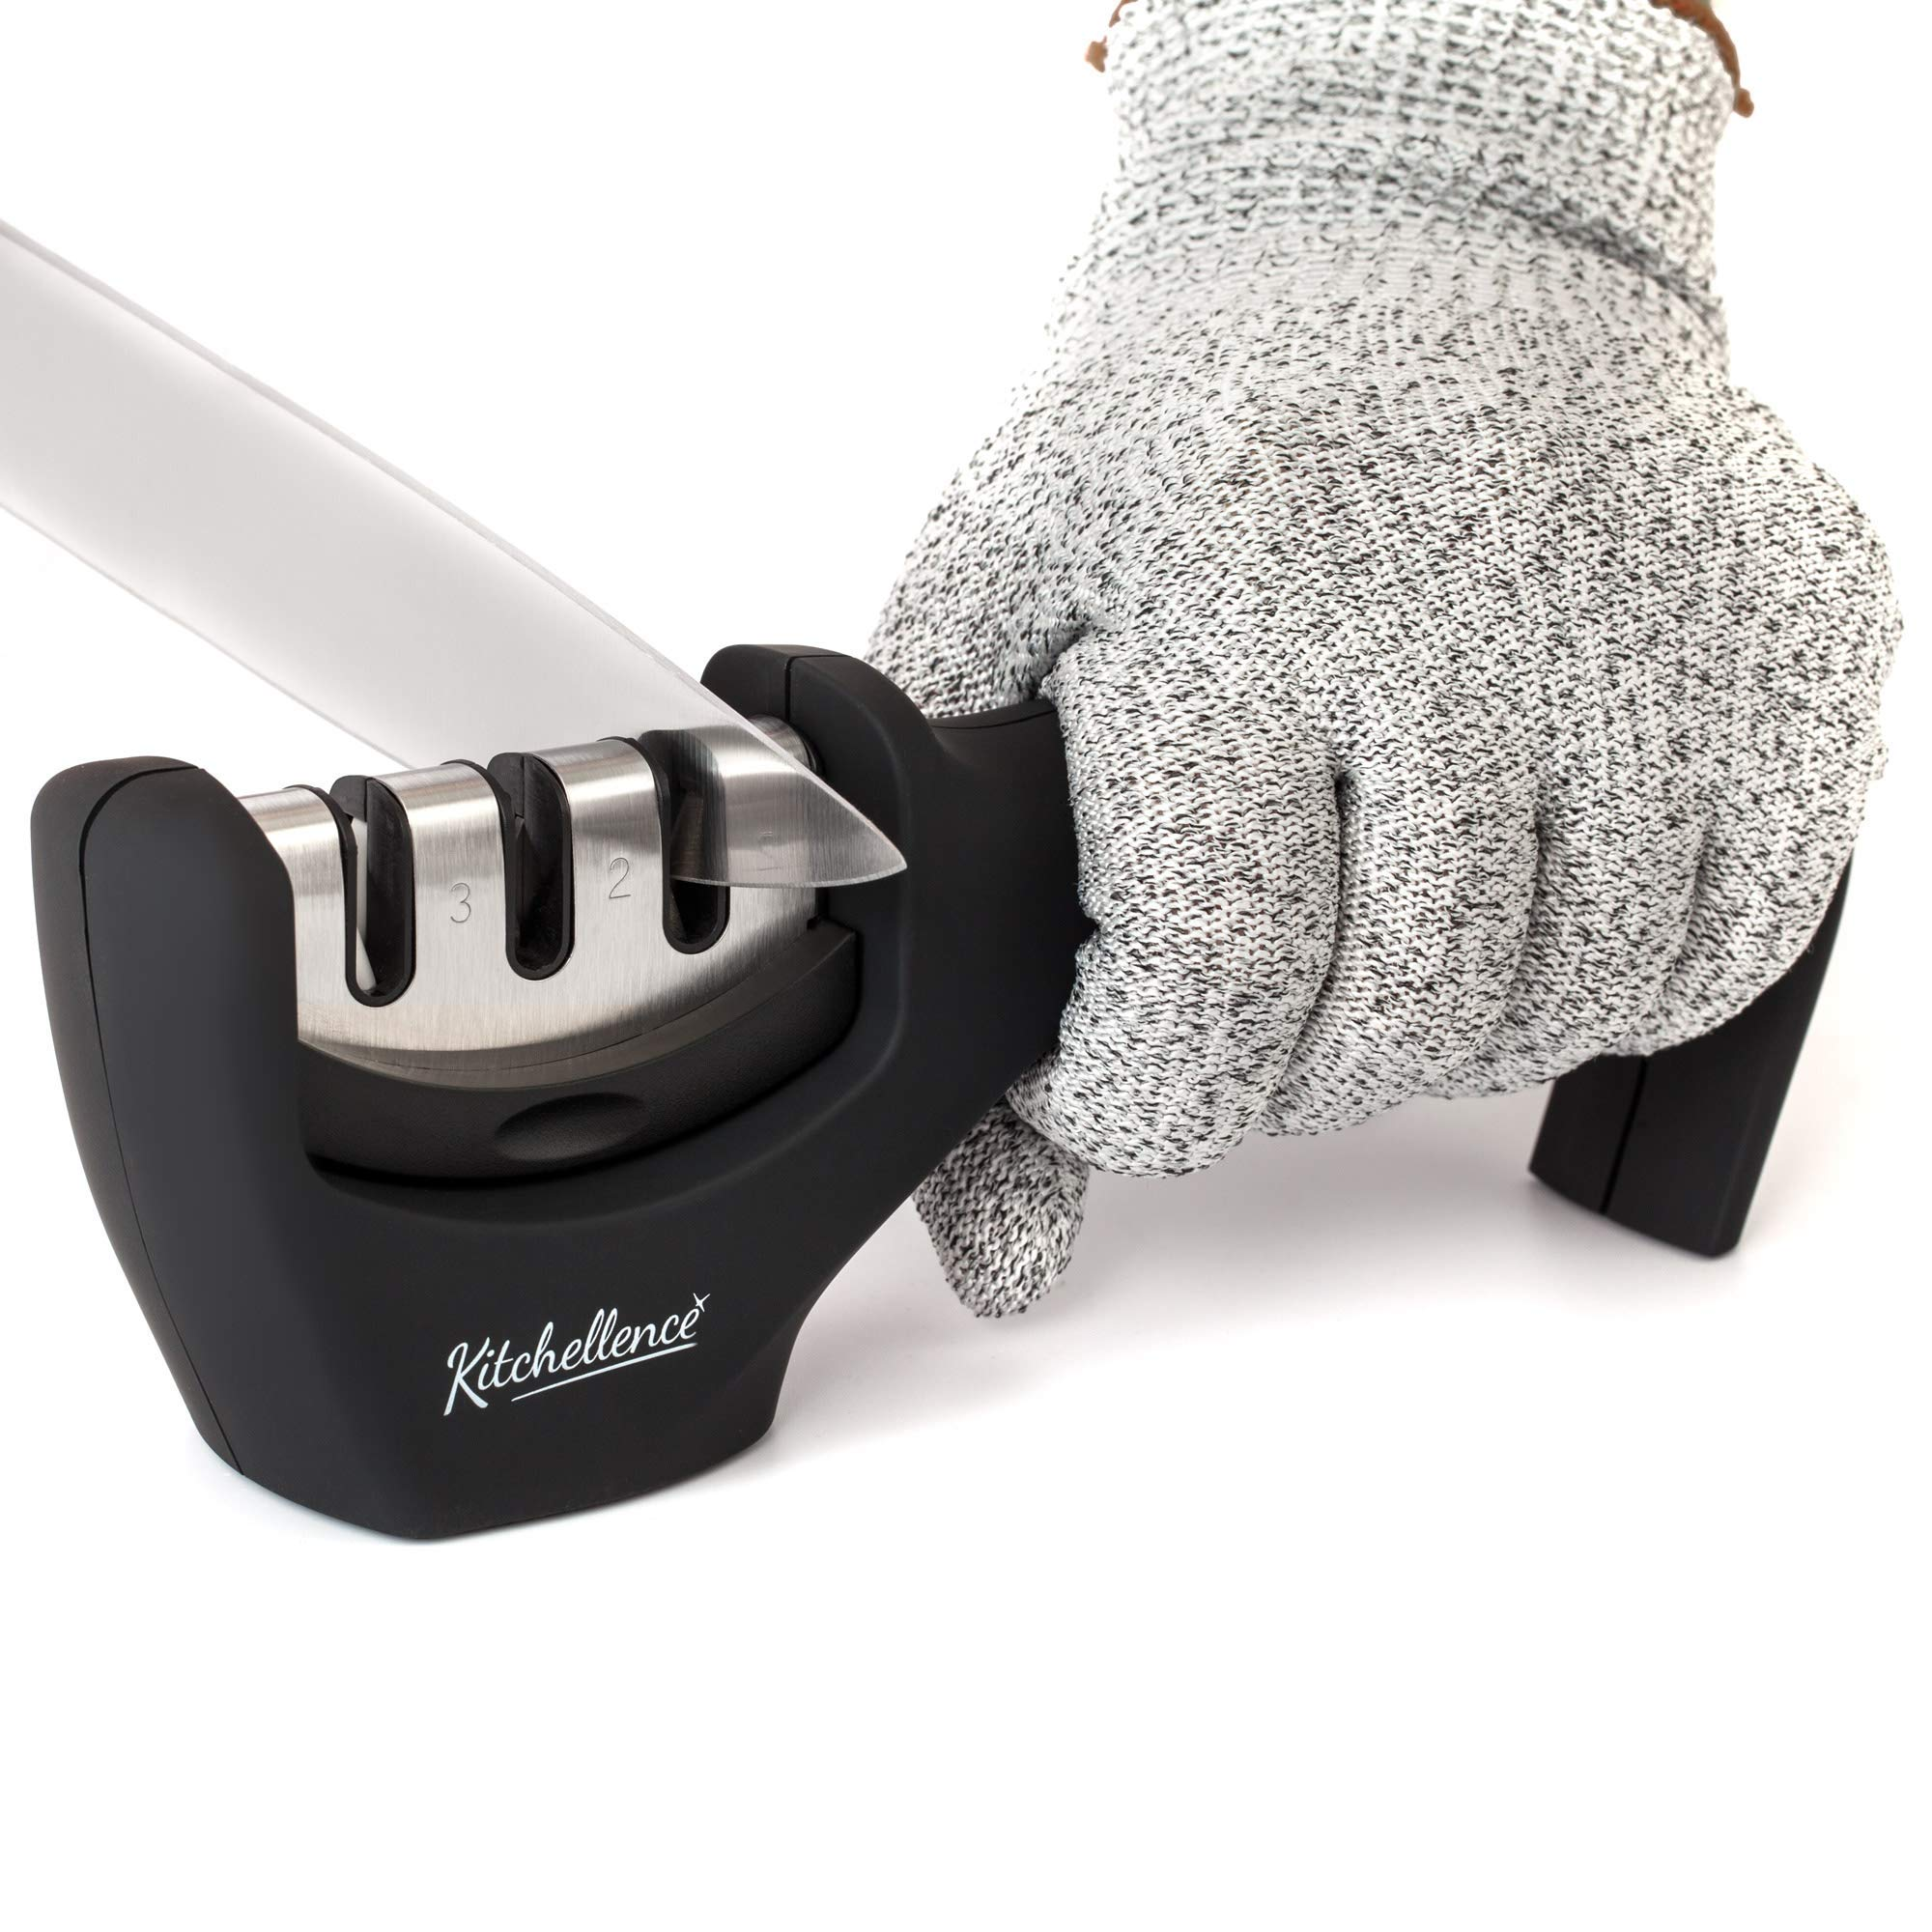 KITCHELLENCE Kitchen Knife Sharpener - 3-Slot Knife Sharpening Tool Helps Repair, Restore and Polish Blades - Cut-Resistant Glove Included